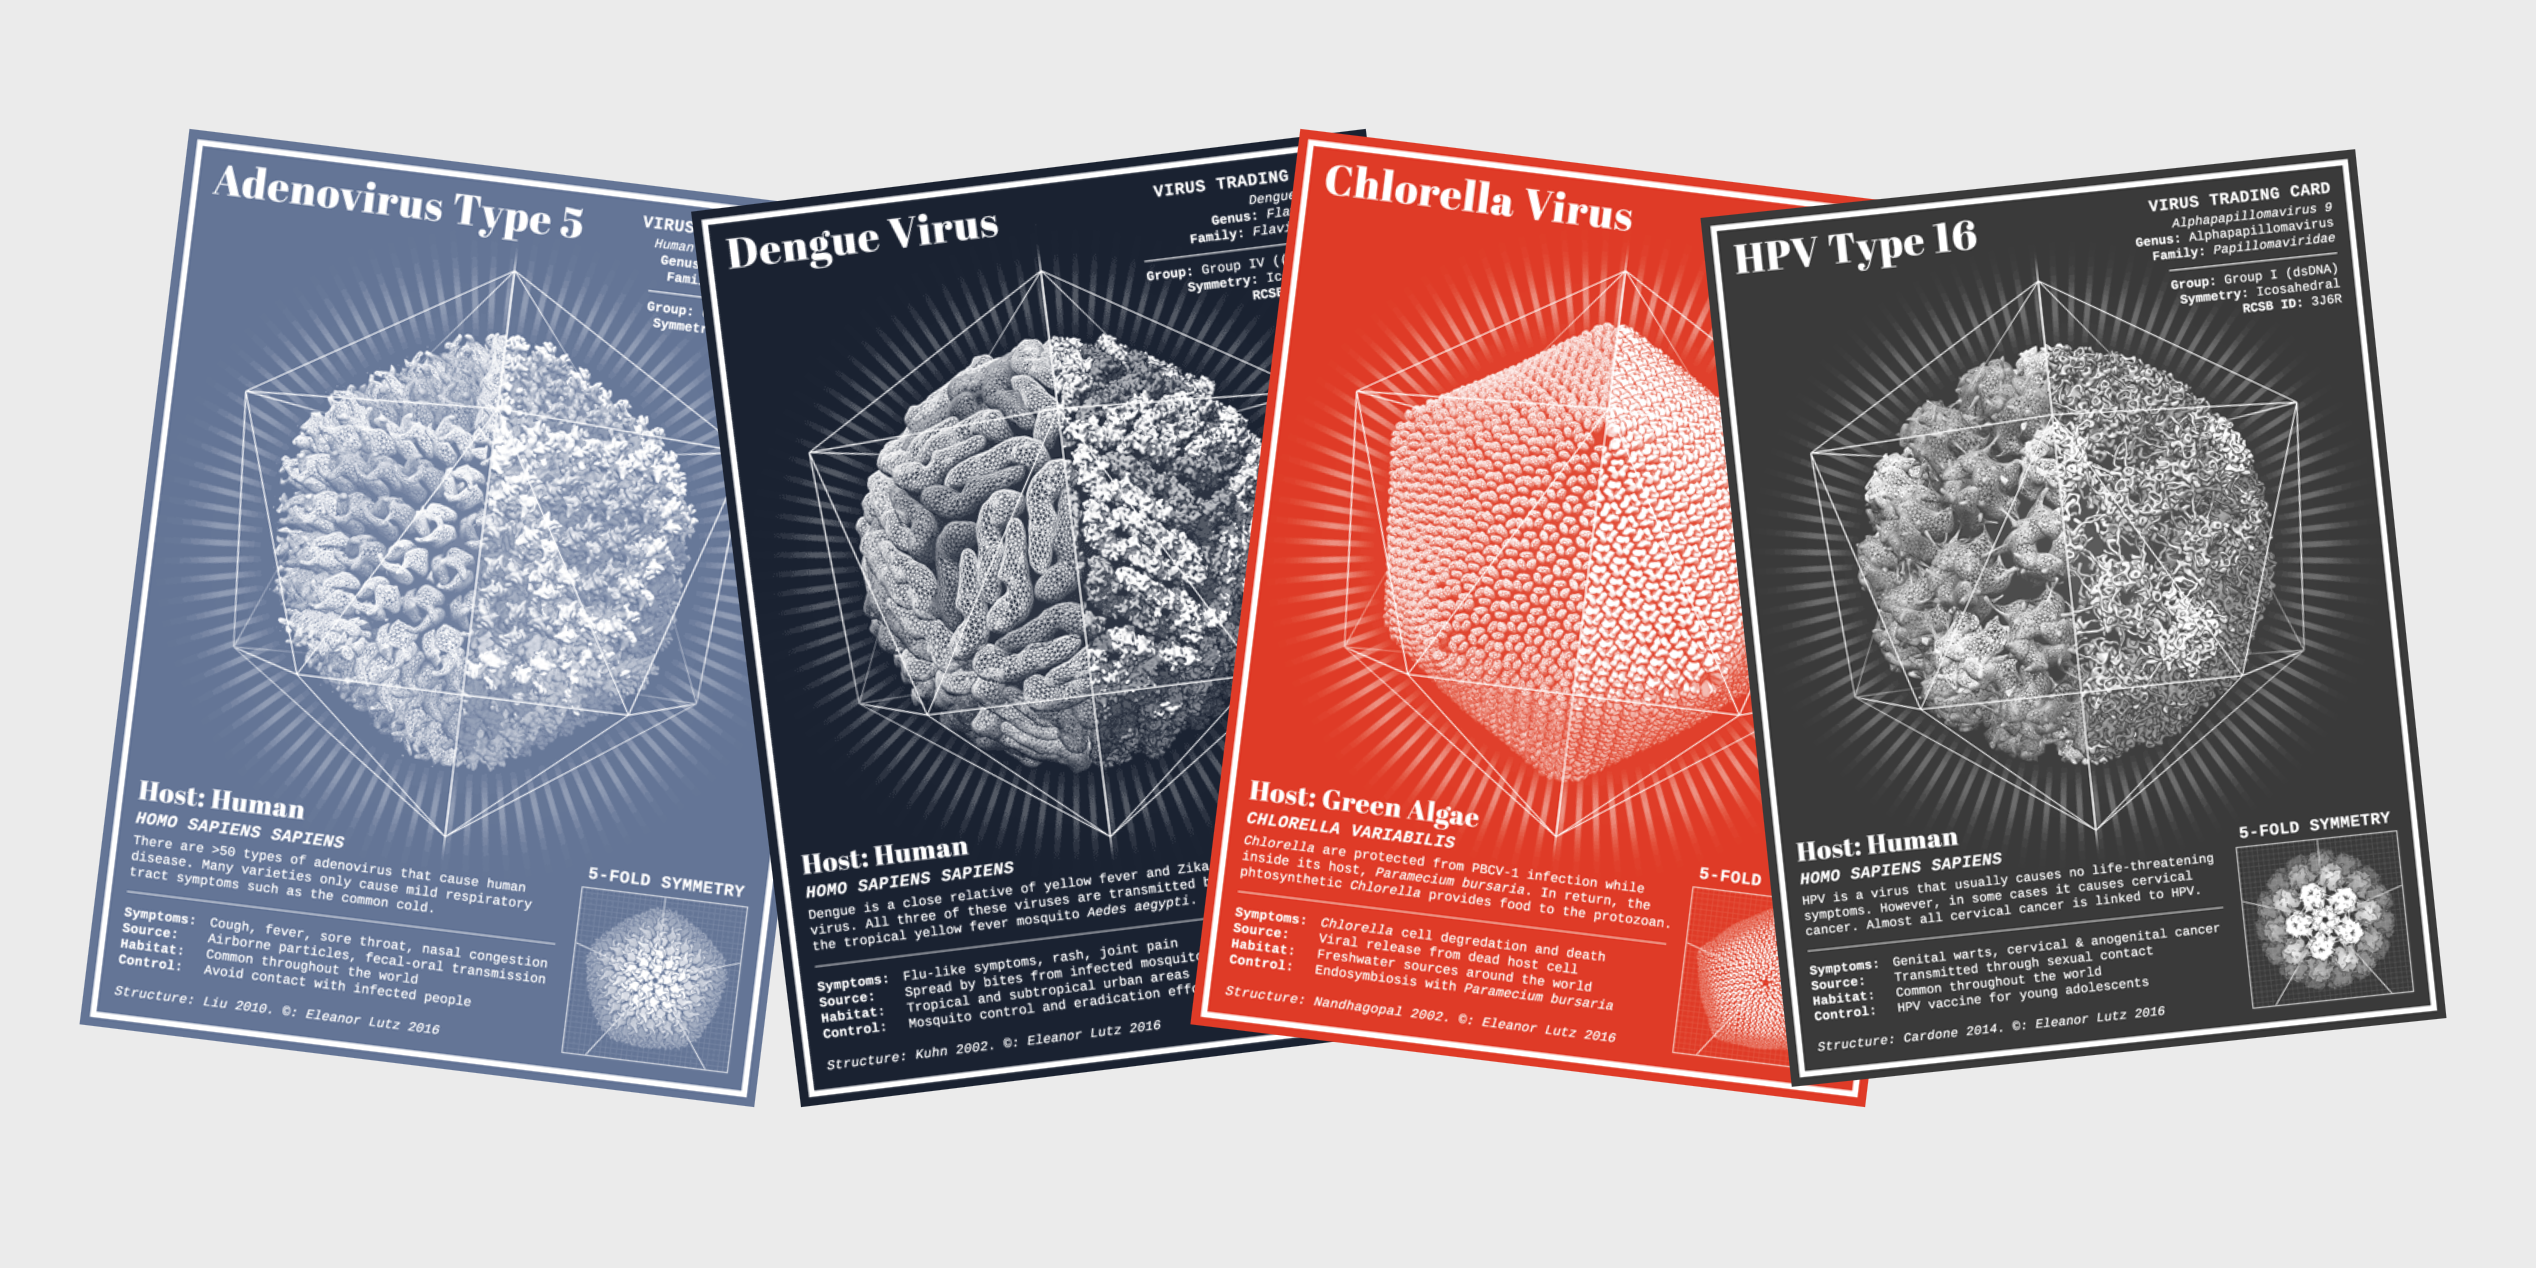 TheseVirus Trading Cards Should Be A Real Game